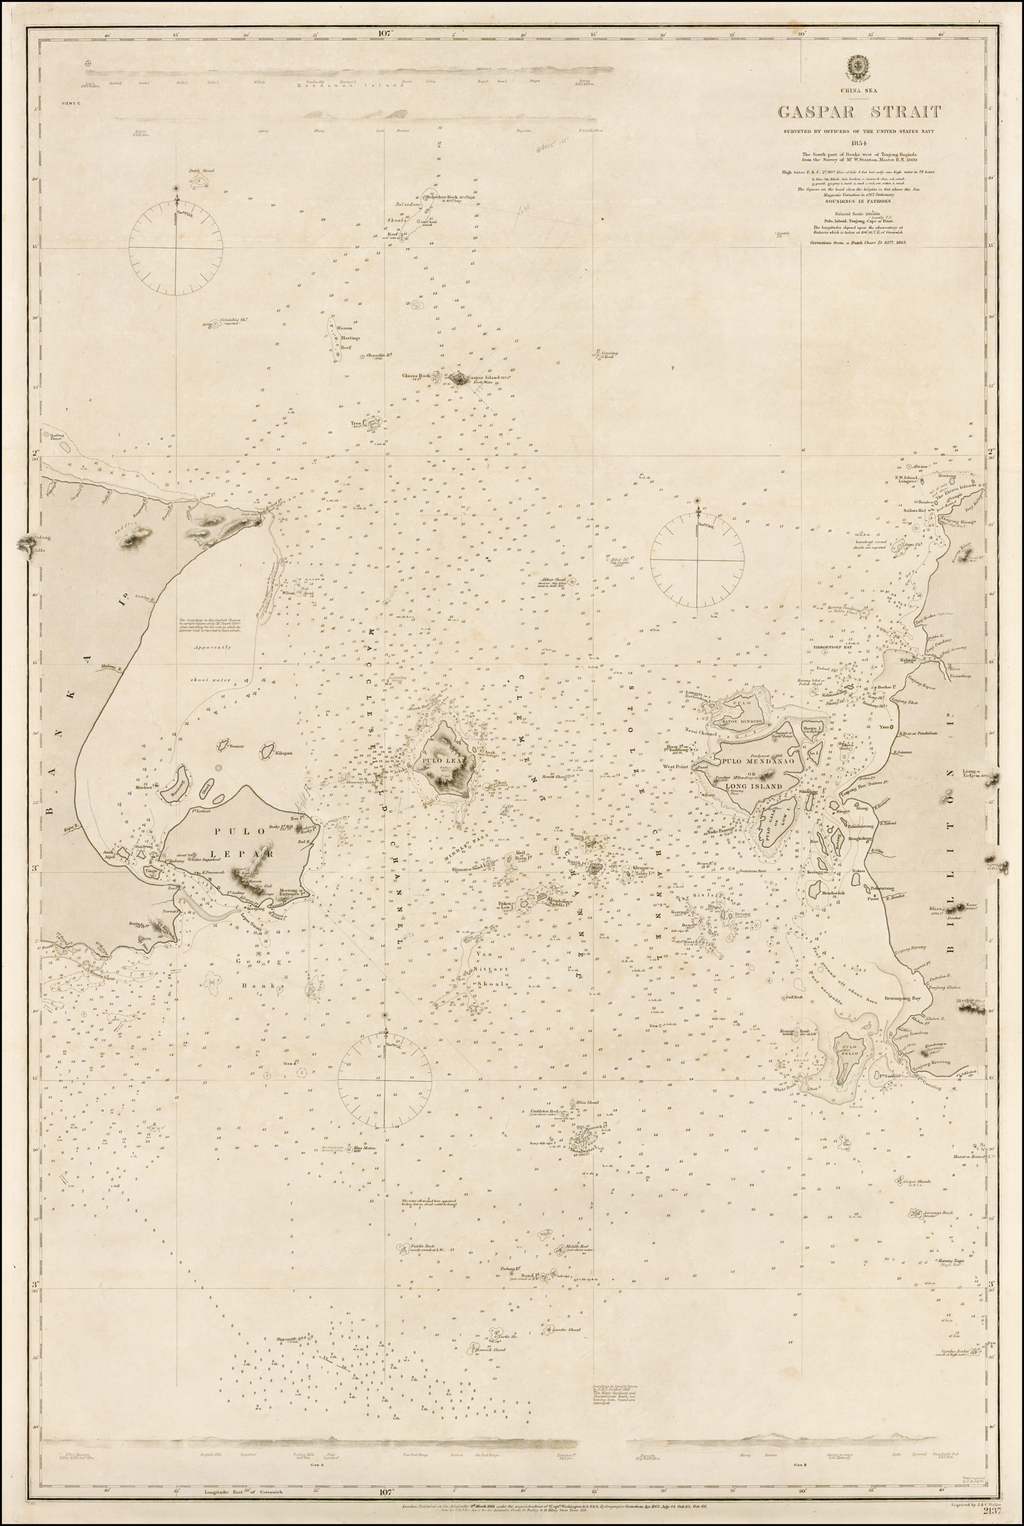 China Sea Gaspar Strait Surveyed by Officers of the United States Navy 1854. By British Admiralty